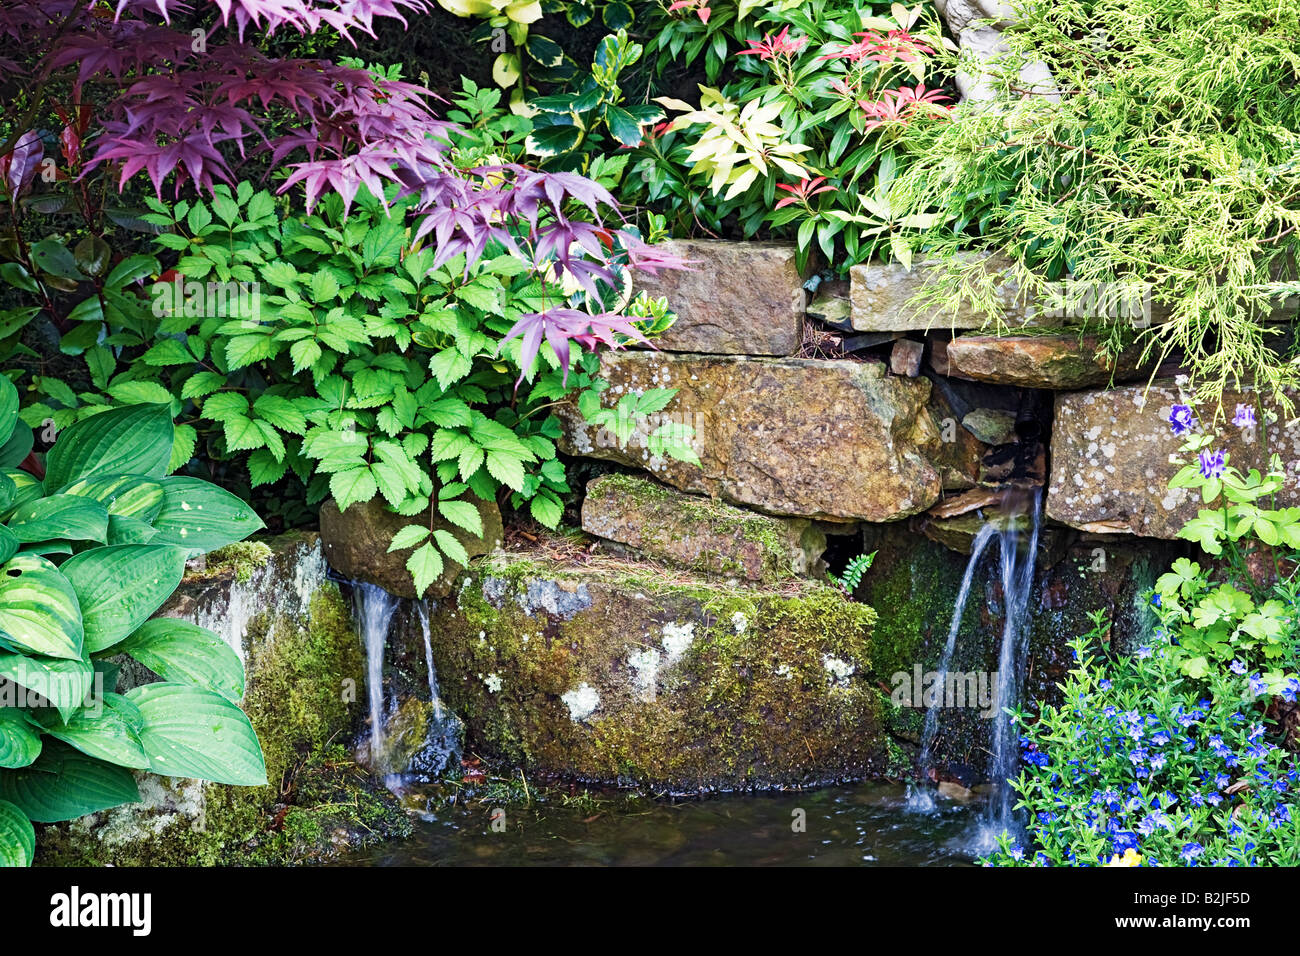 ENGLISH GARDEN WATERFALL AND POND